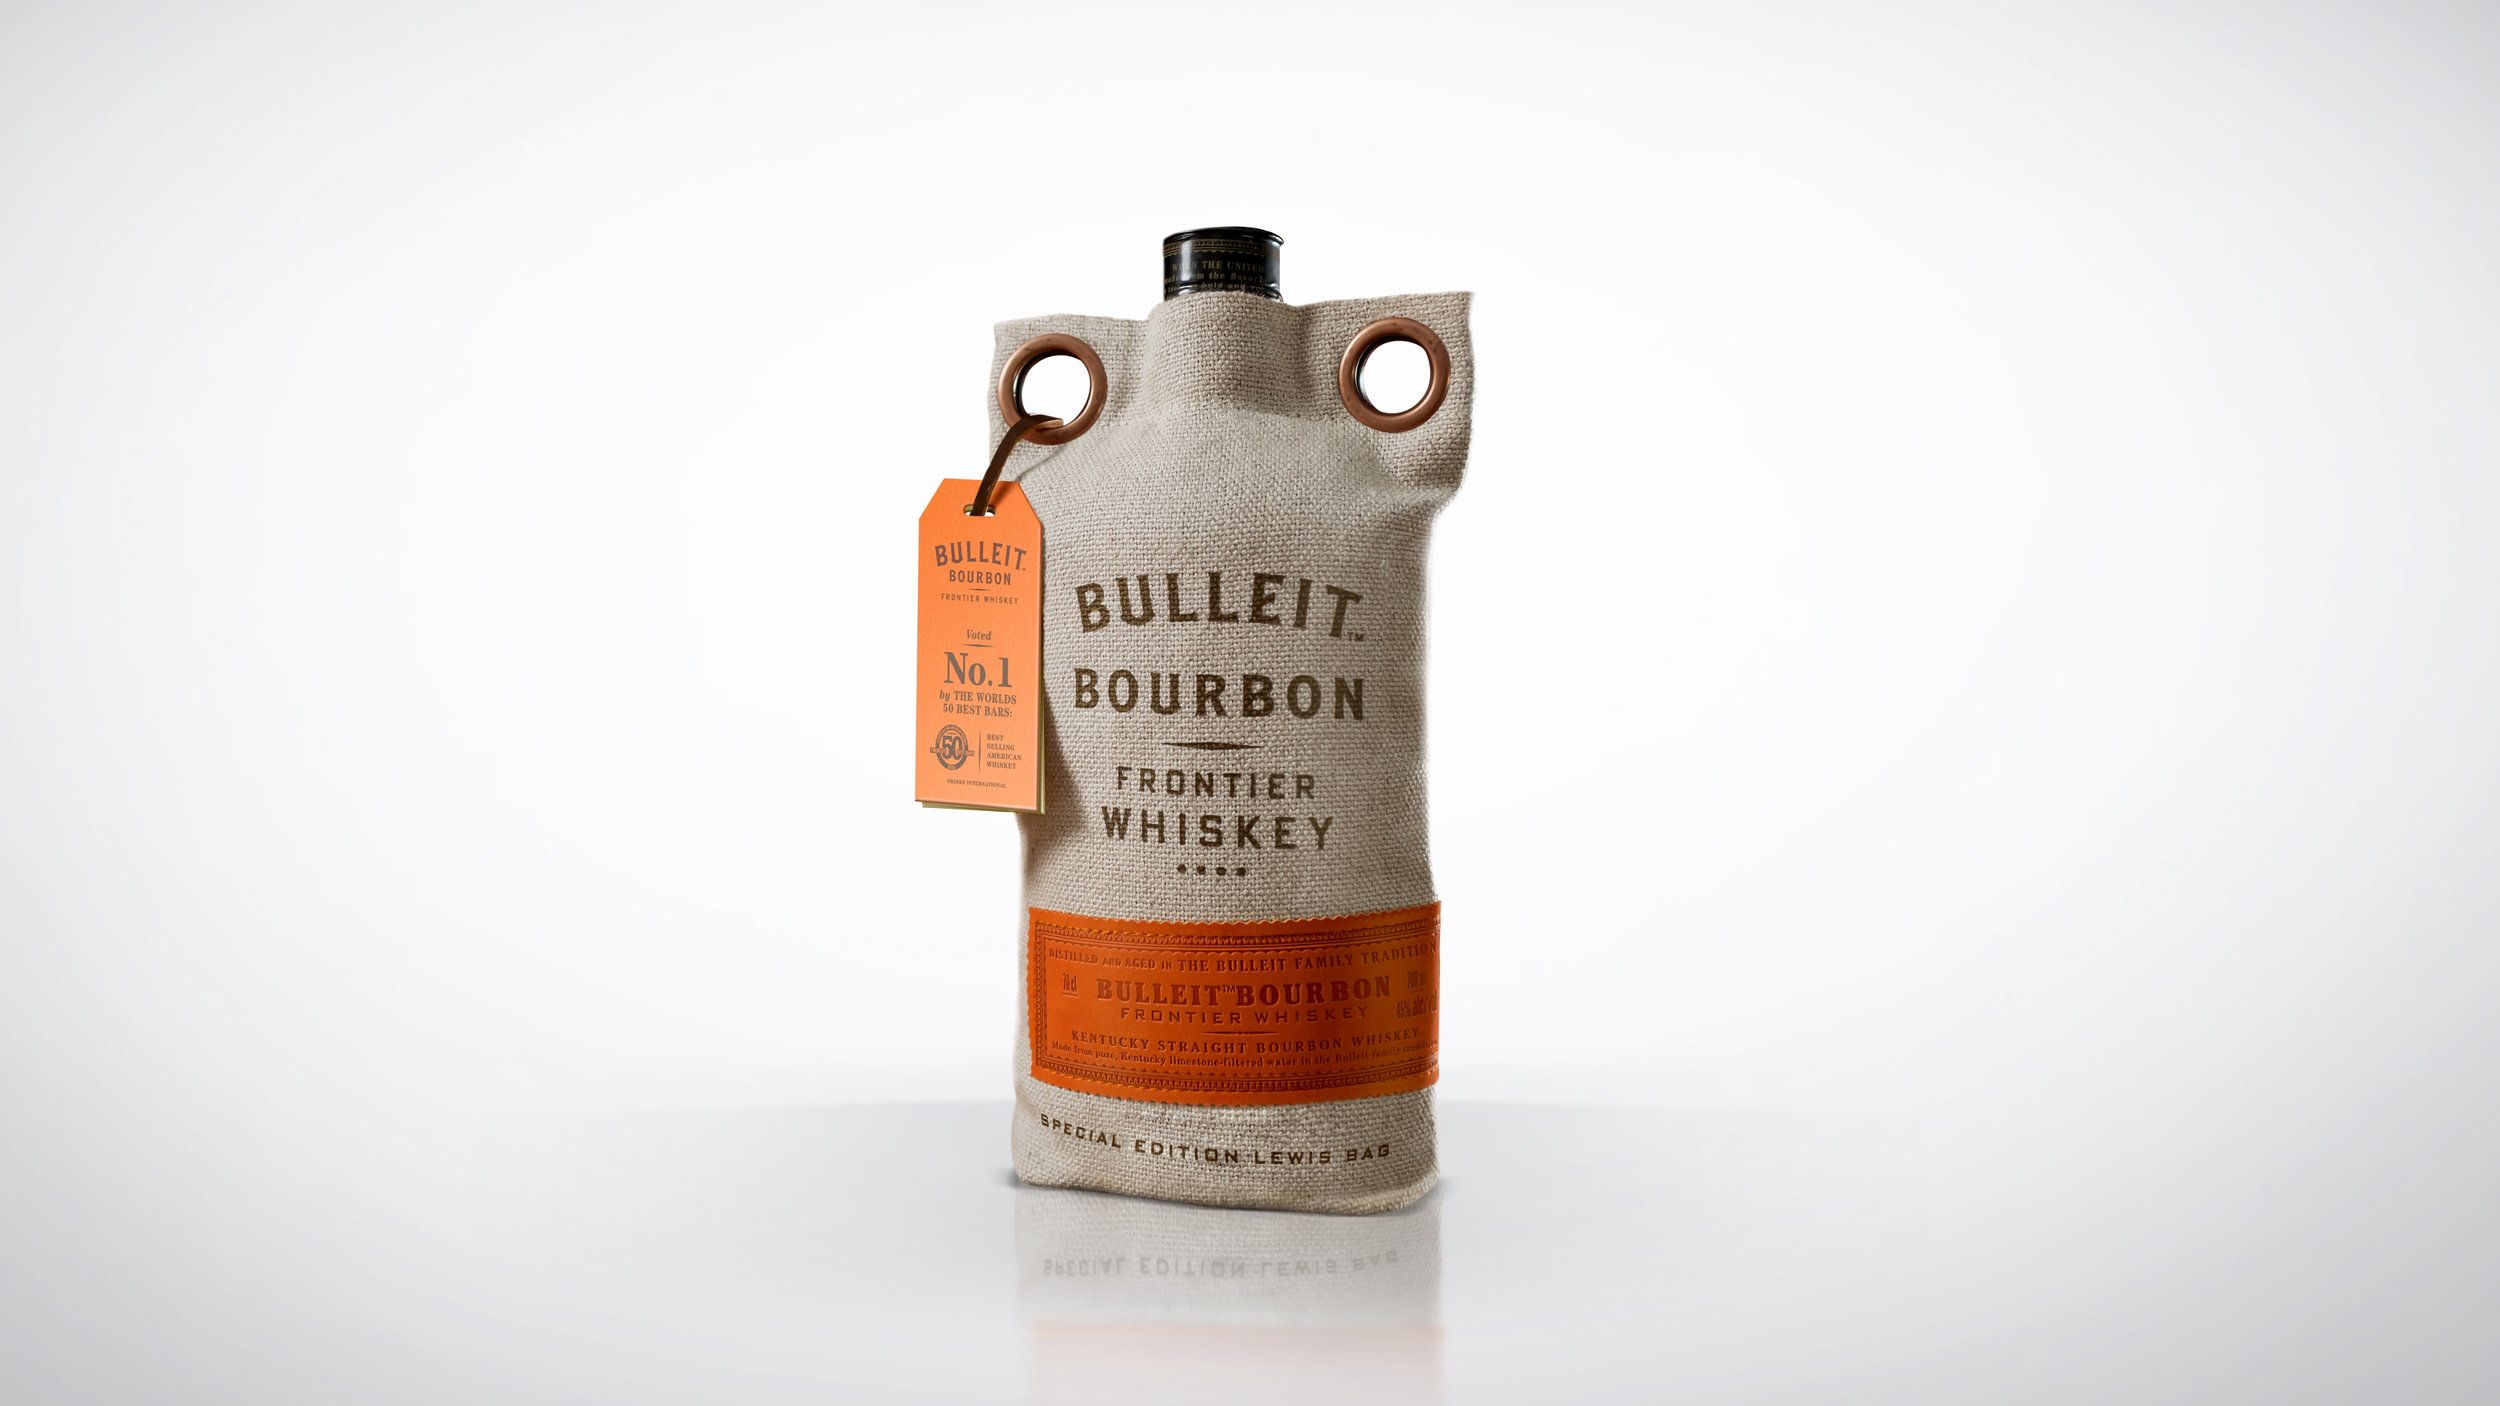 Butterflycannon-Bulleit-Bourbon-Lewis-Bag-Notable-Agencies-and-Works-of-2016.jpg